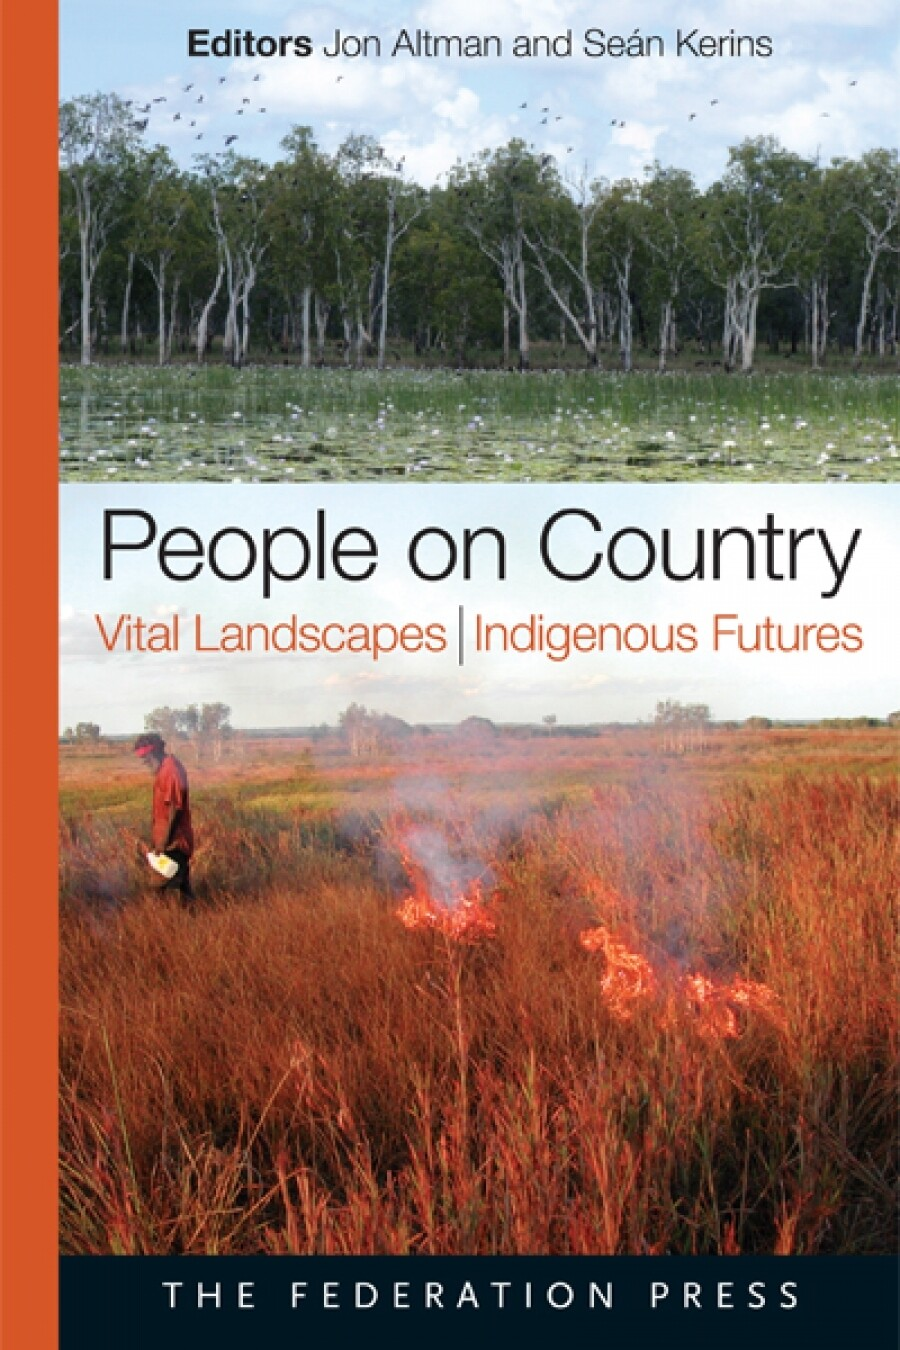 People on Country, Vital Landscapes, Indigenous Futures Edited by Jon Altman and Seán Kerins